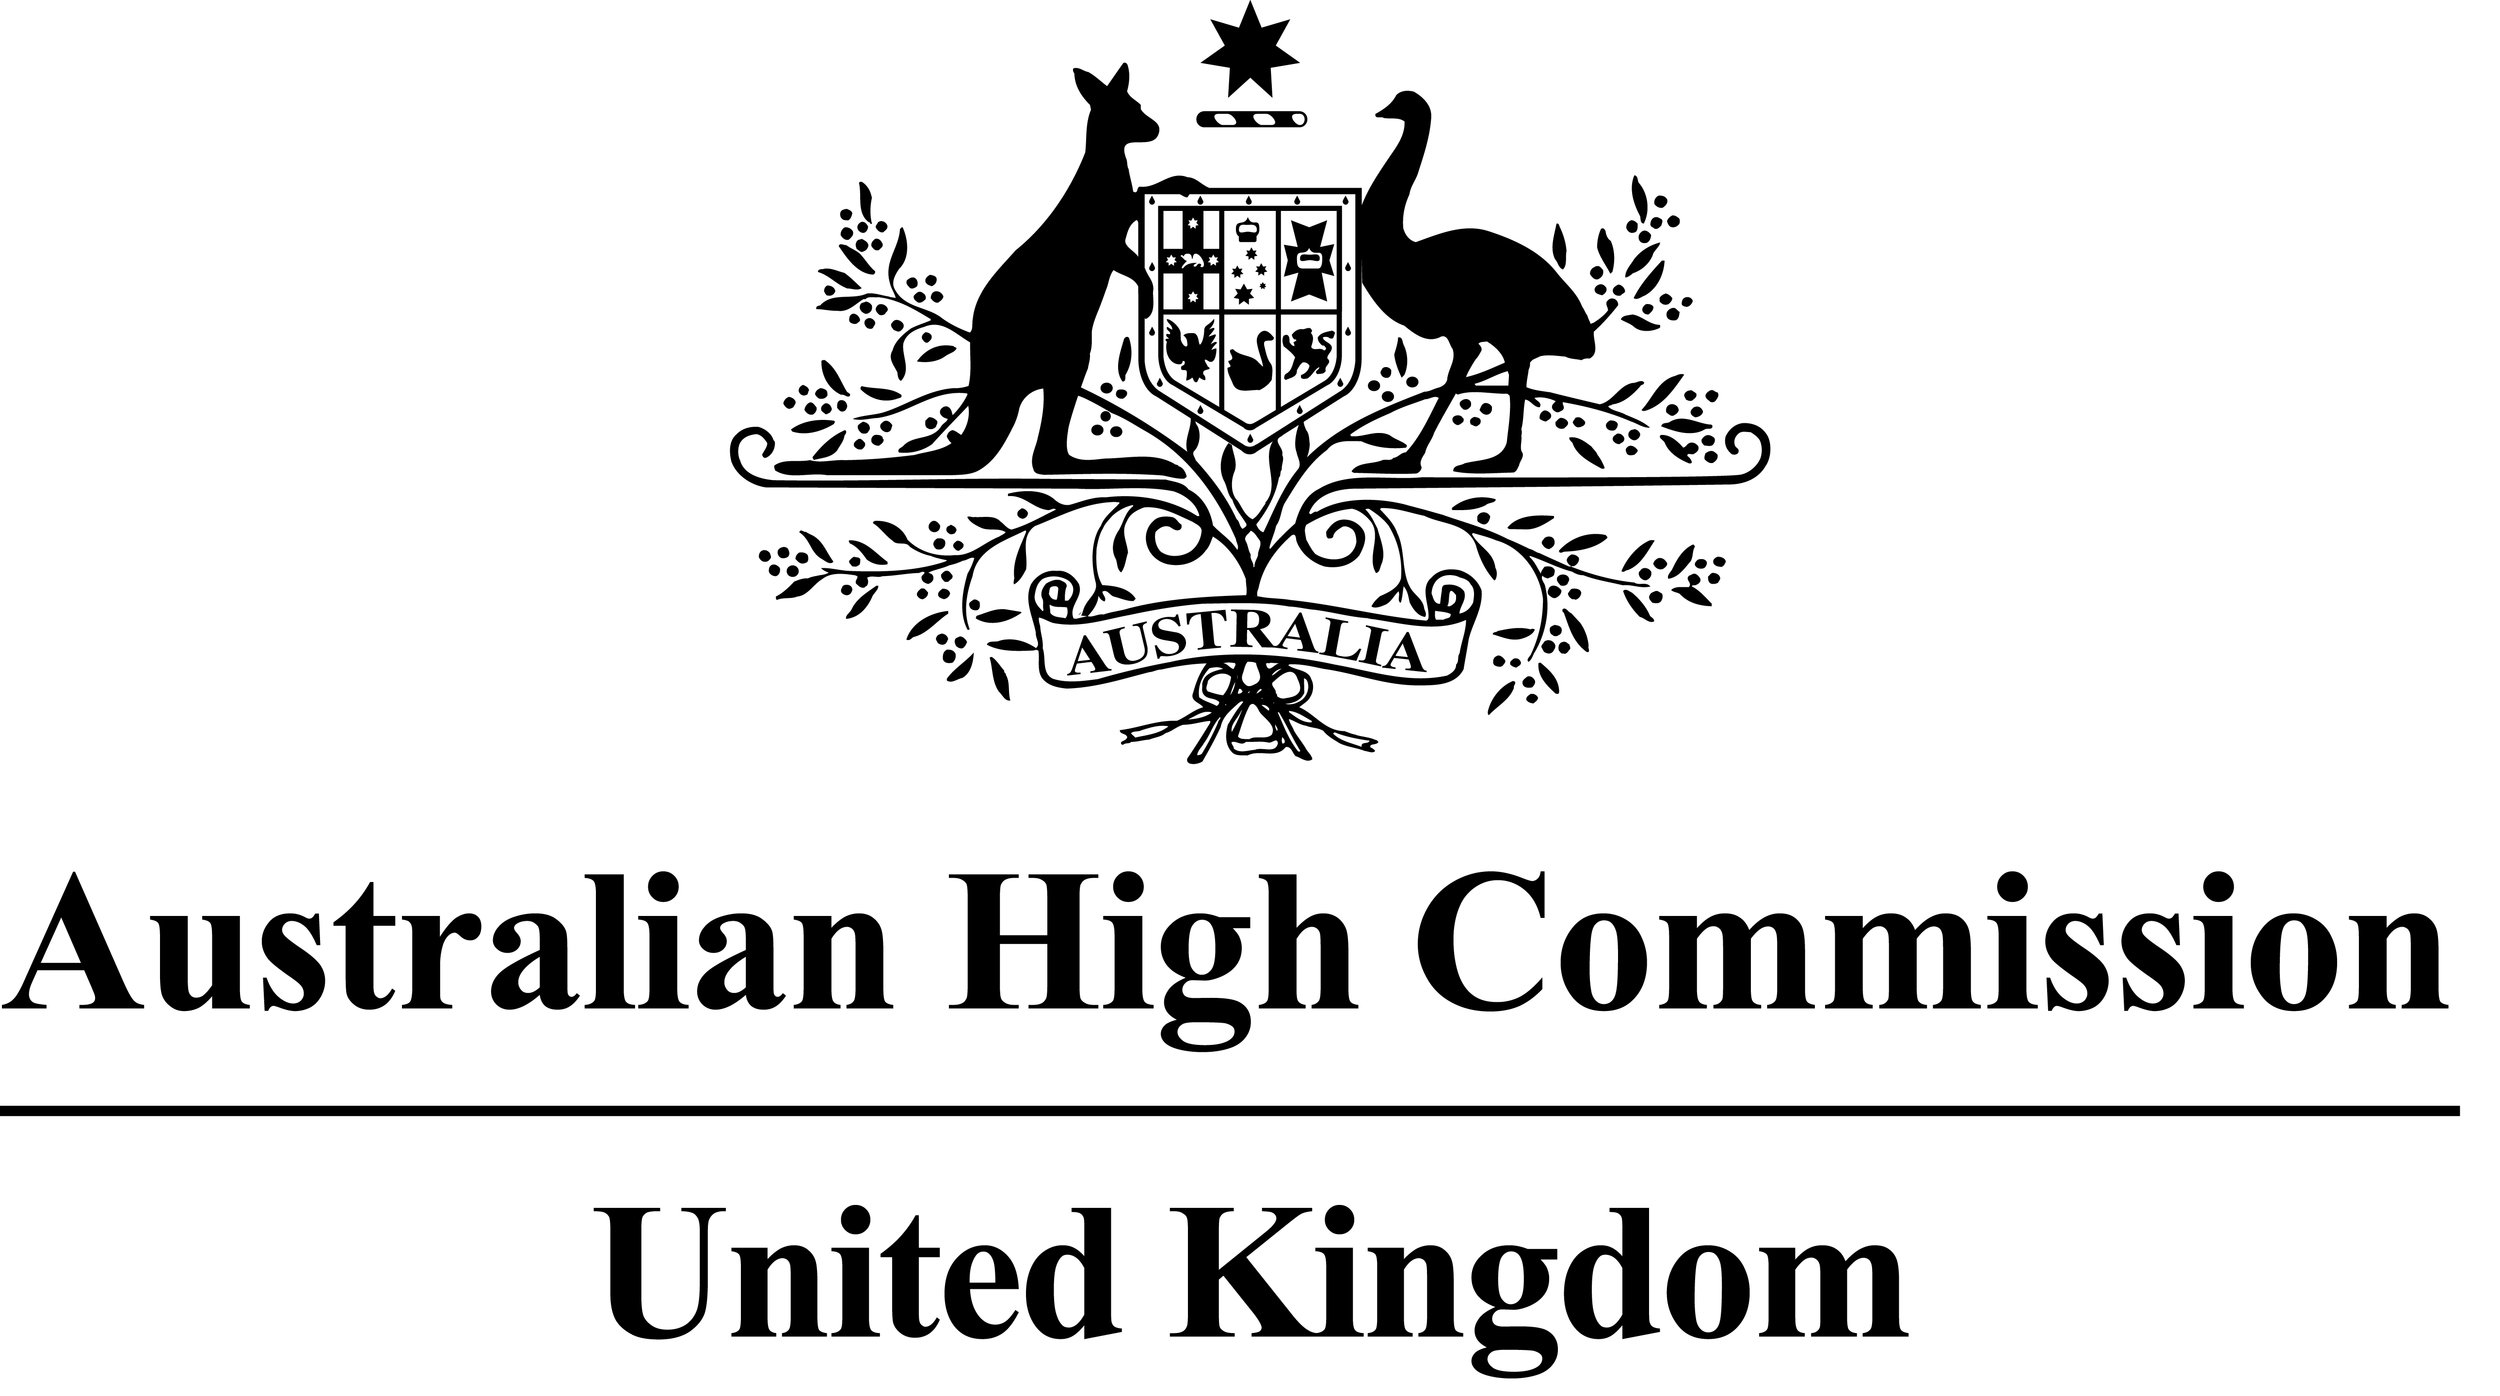 Australian-High-Commission-United-Kingdom-stacked-pc-jpeg (1).jpg